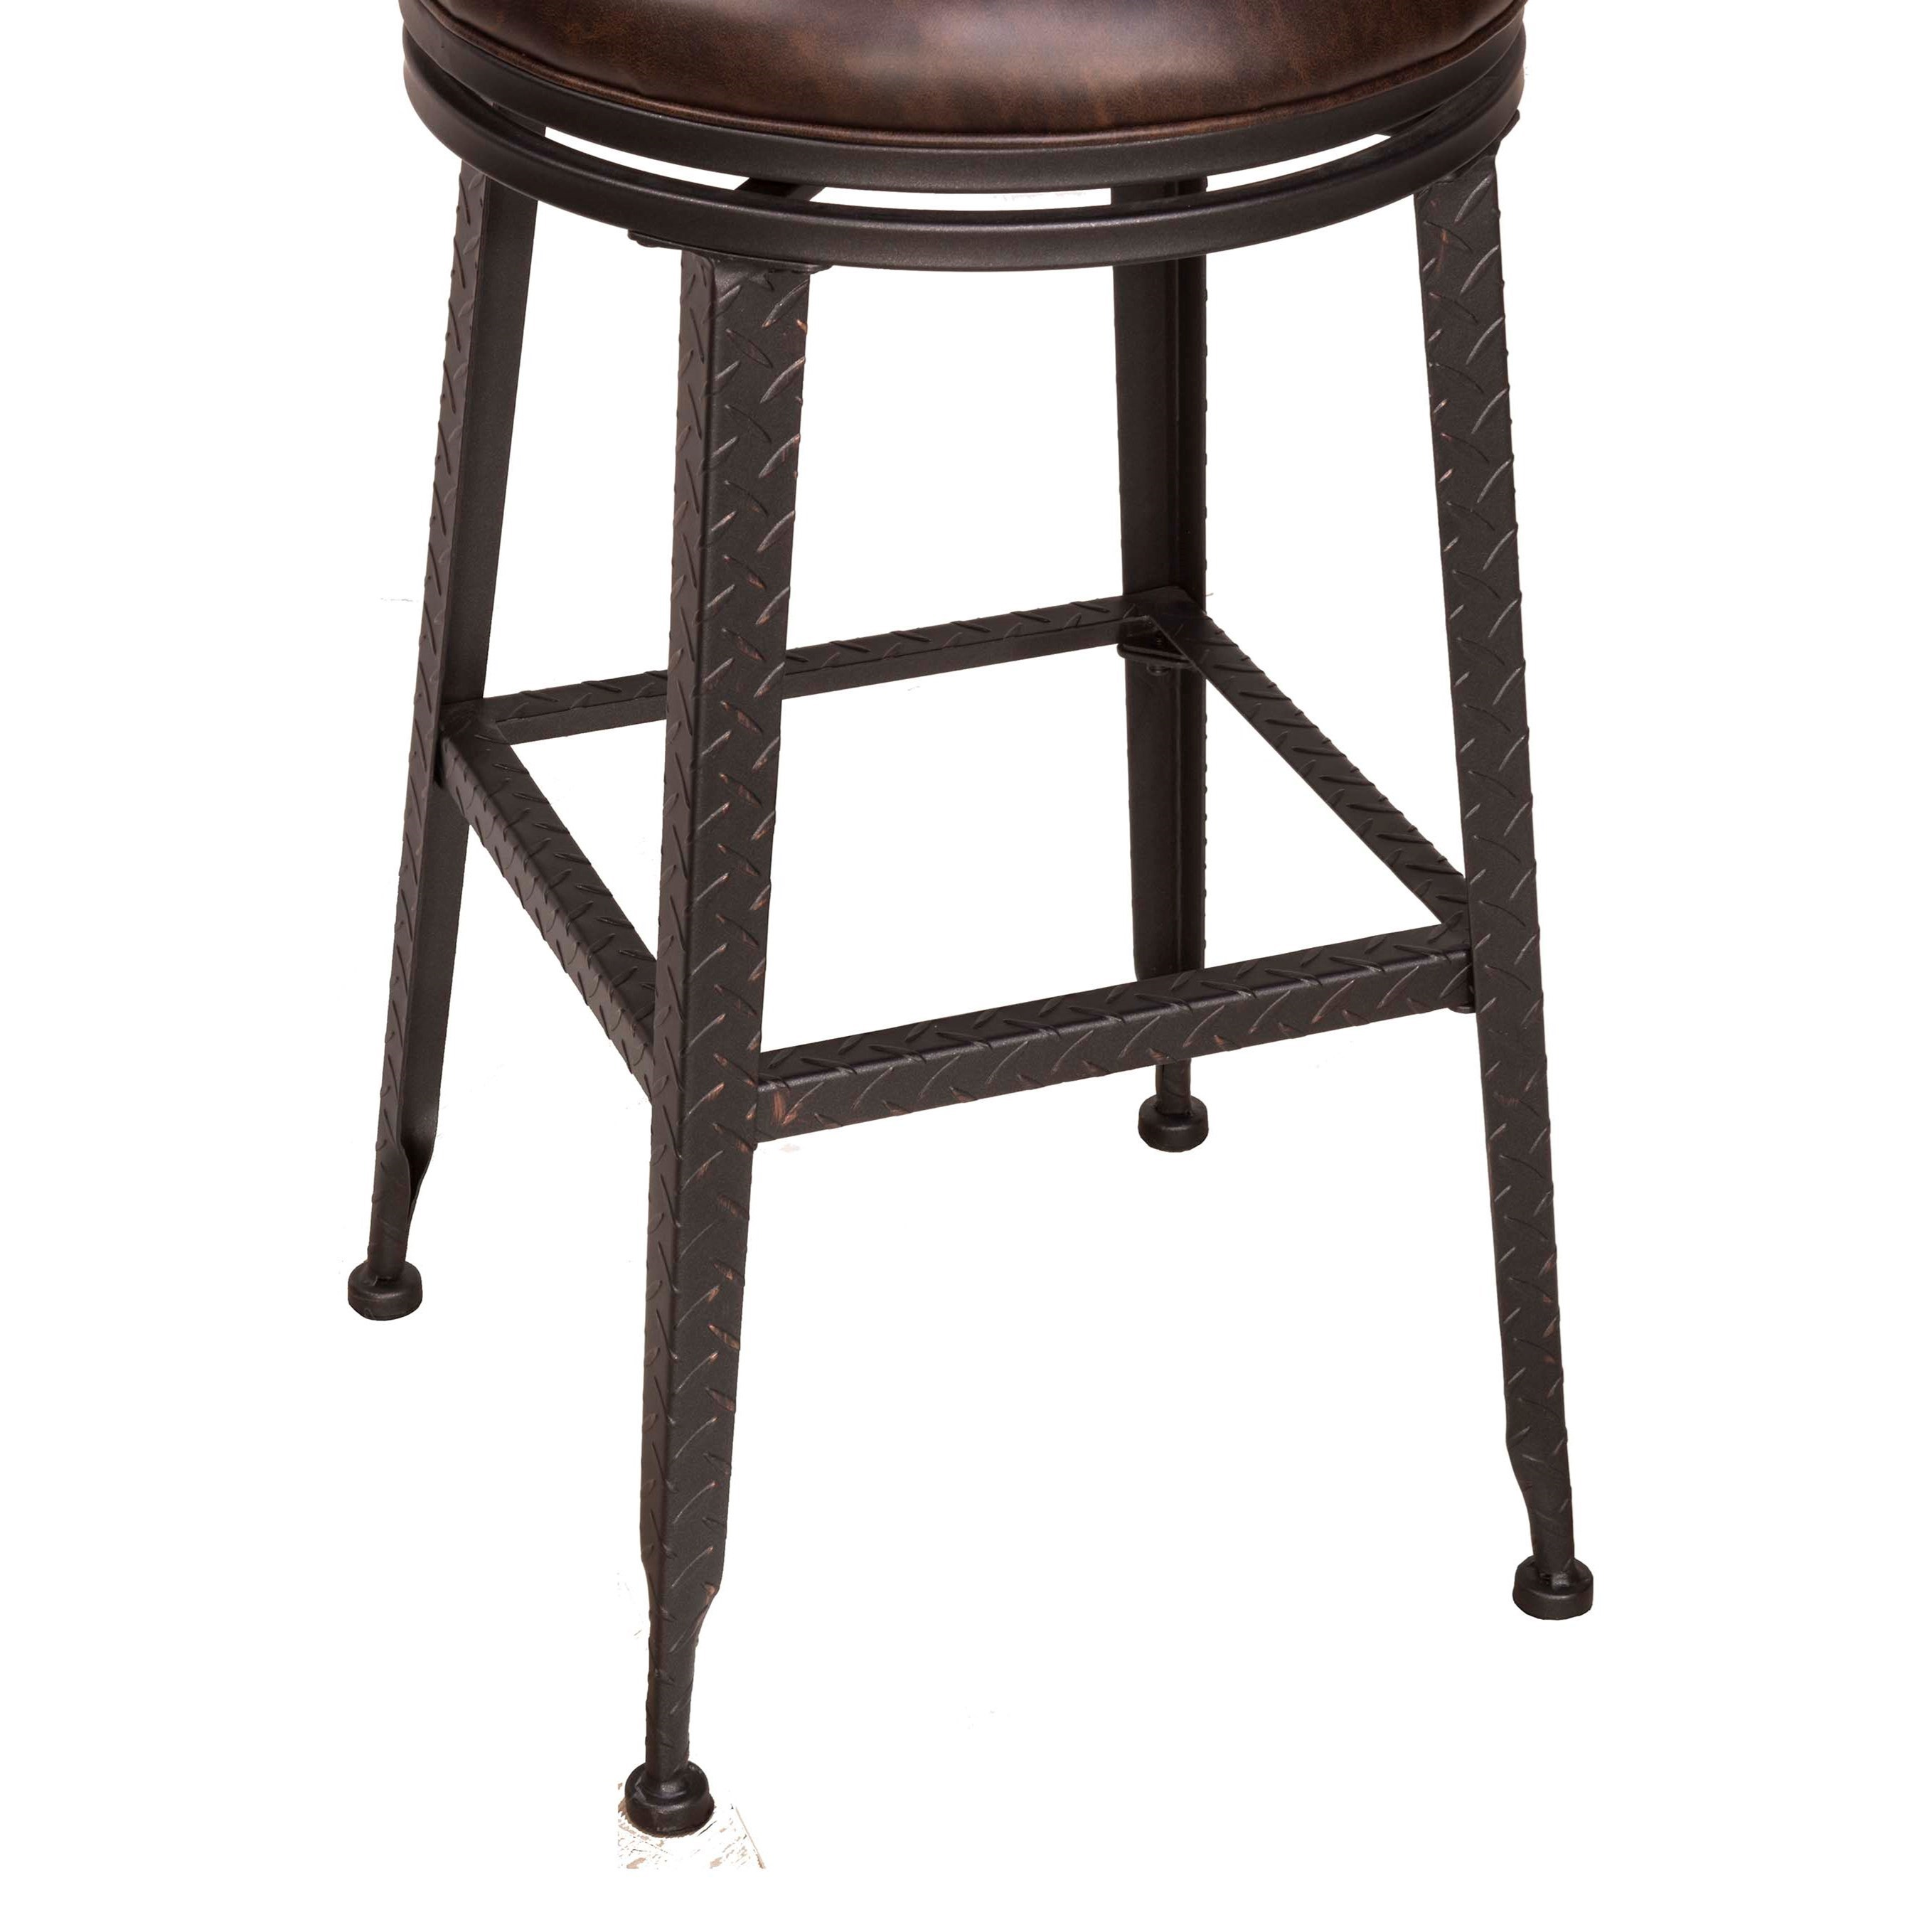 Hillsdale Backless Bar Stools Black Metal With Copper Highlights Backless Swivel Counter Stool - Backless Stools